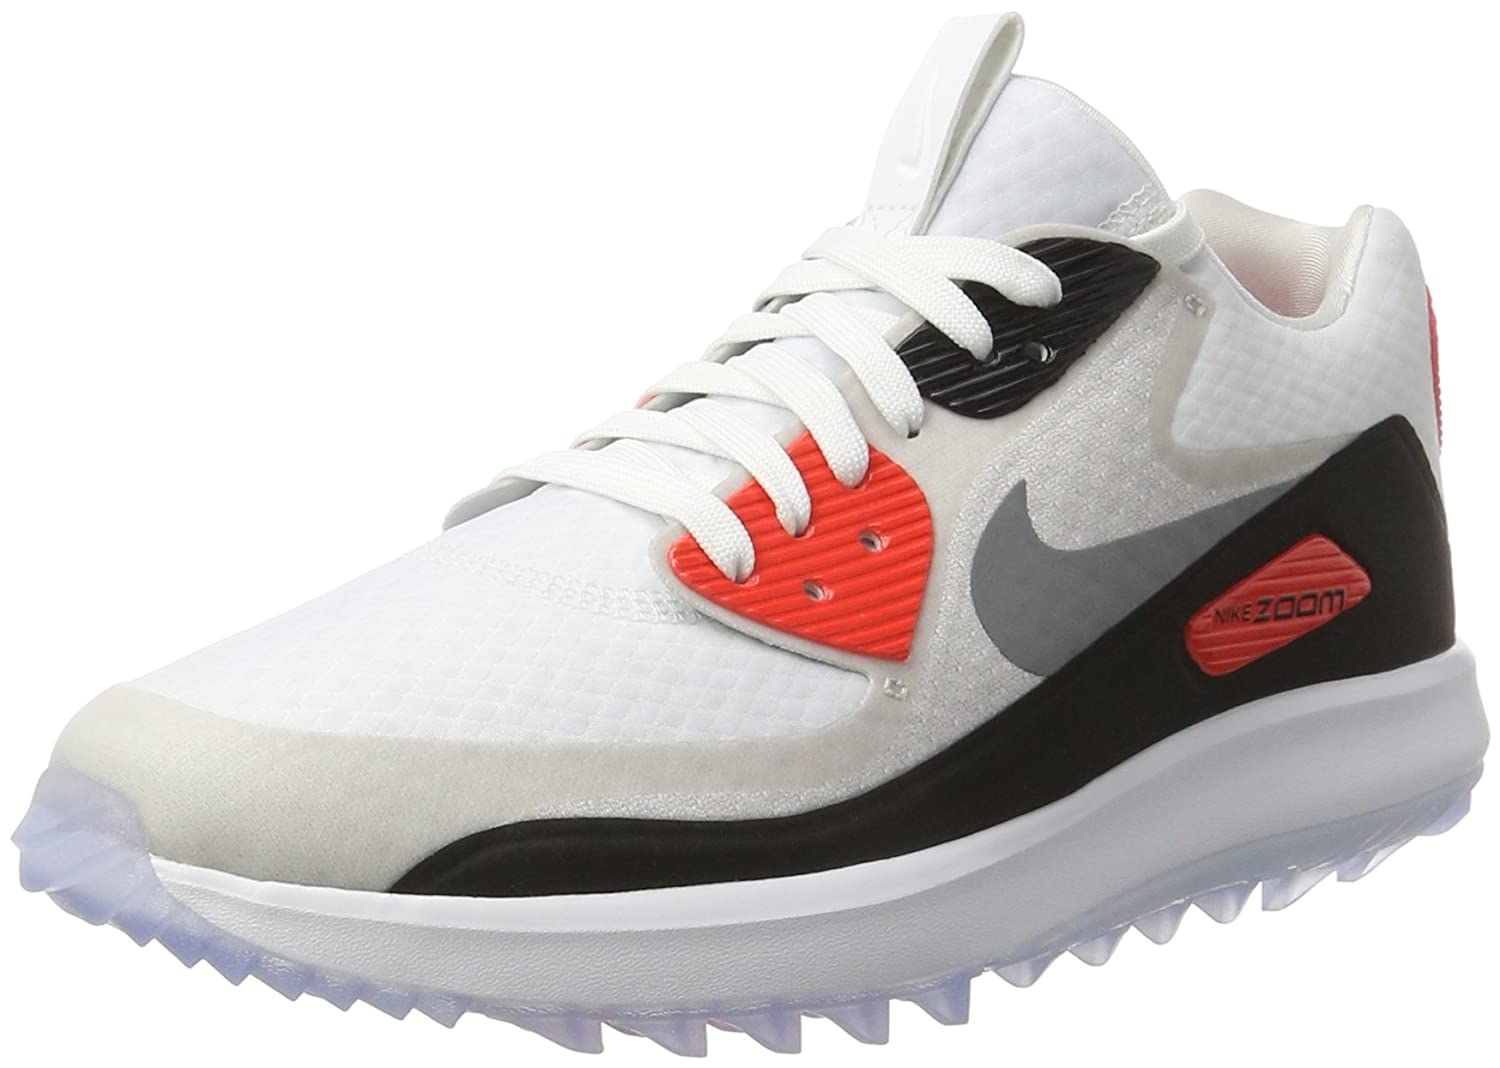 NIKE Air Zoom 90 Spikeless Golf Shoes 2017 Women B01HHCBL2O 8.5 B(M) US|White/Cool Gray/Neutral Gray/Black